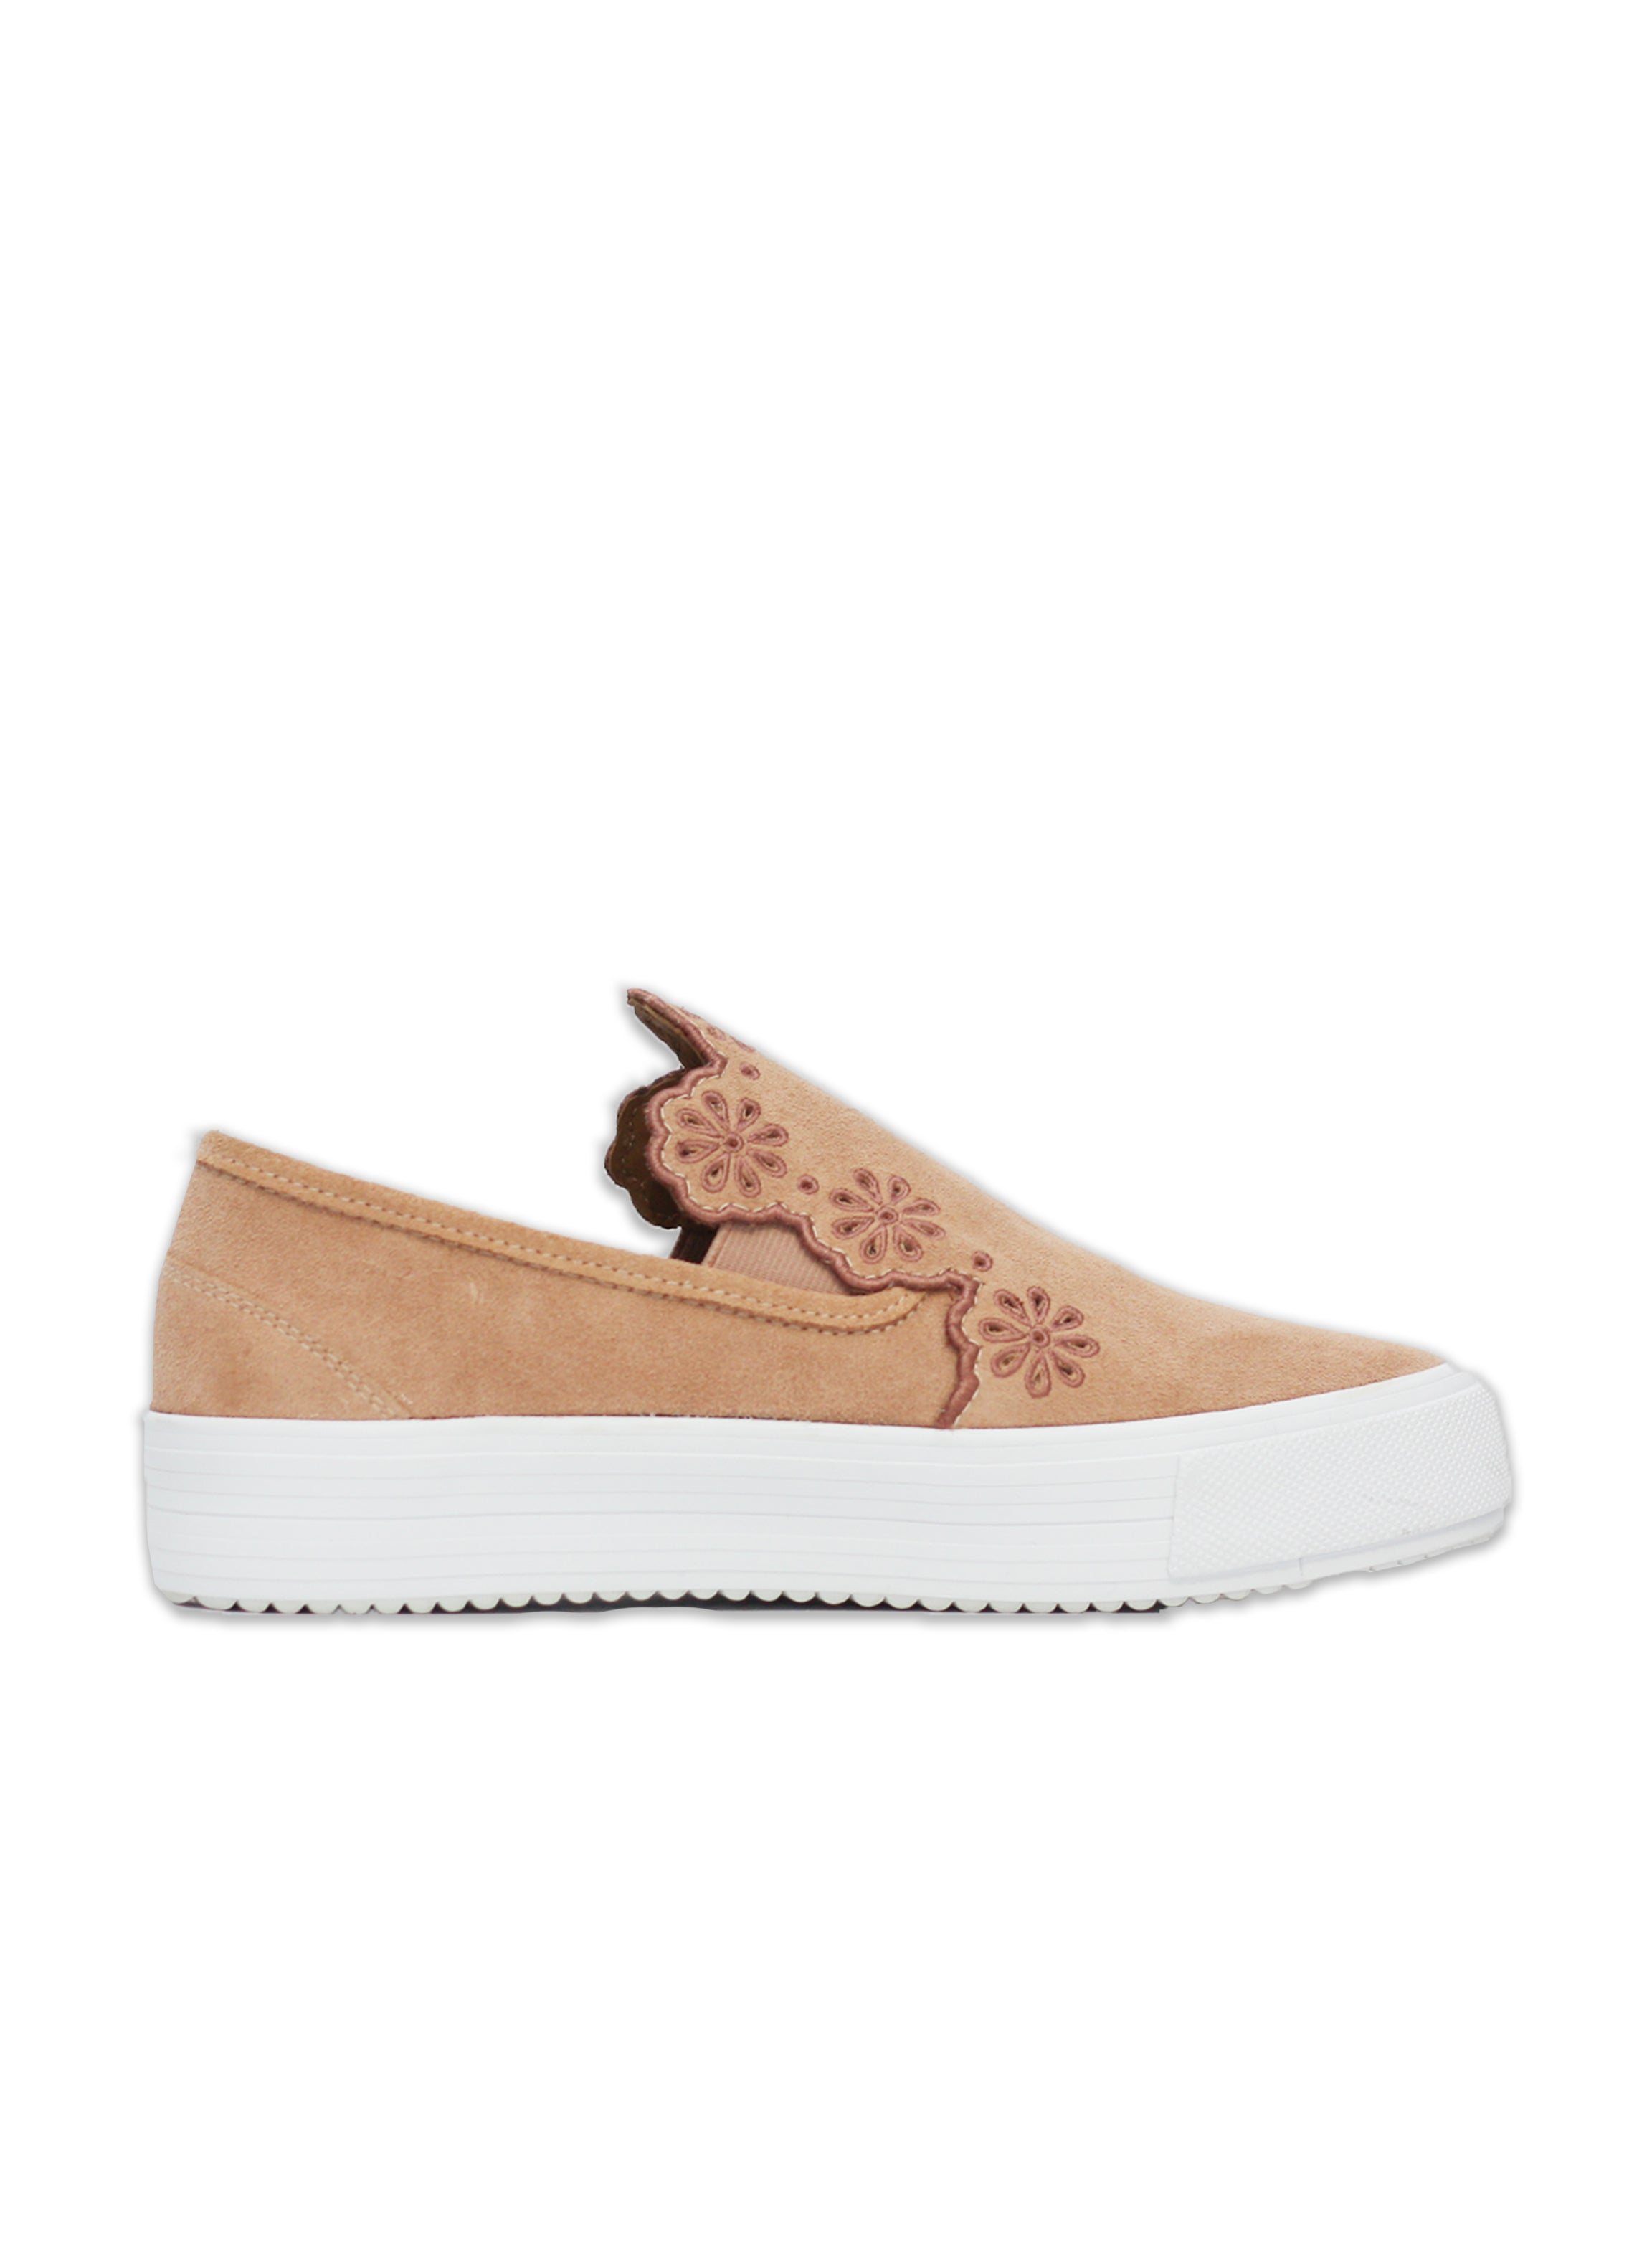 free shipping pick a best See By Chloé Slip-on suede sneakers buy cheap enjoy hAPfQO1w